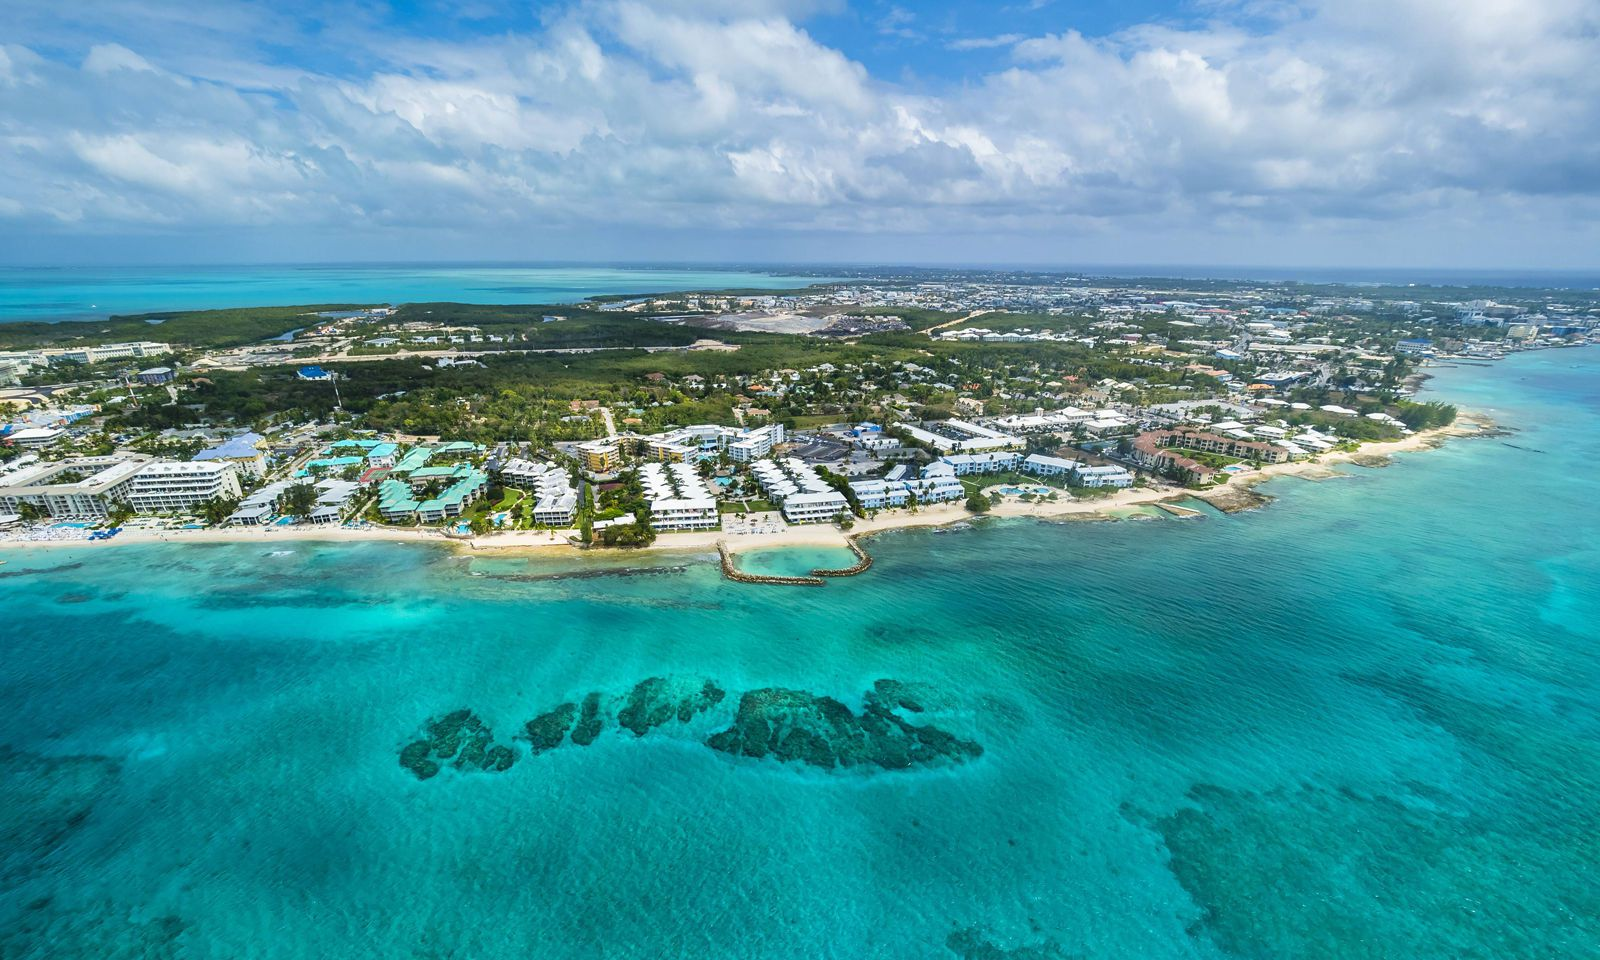 Caribbean Cayman Islands George Town Luxury resorts and Seven Mile Beach PUBLICATIONxINxGERxSUIxA